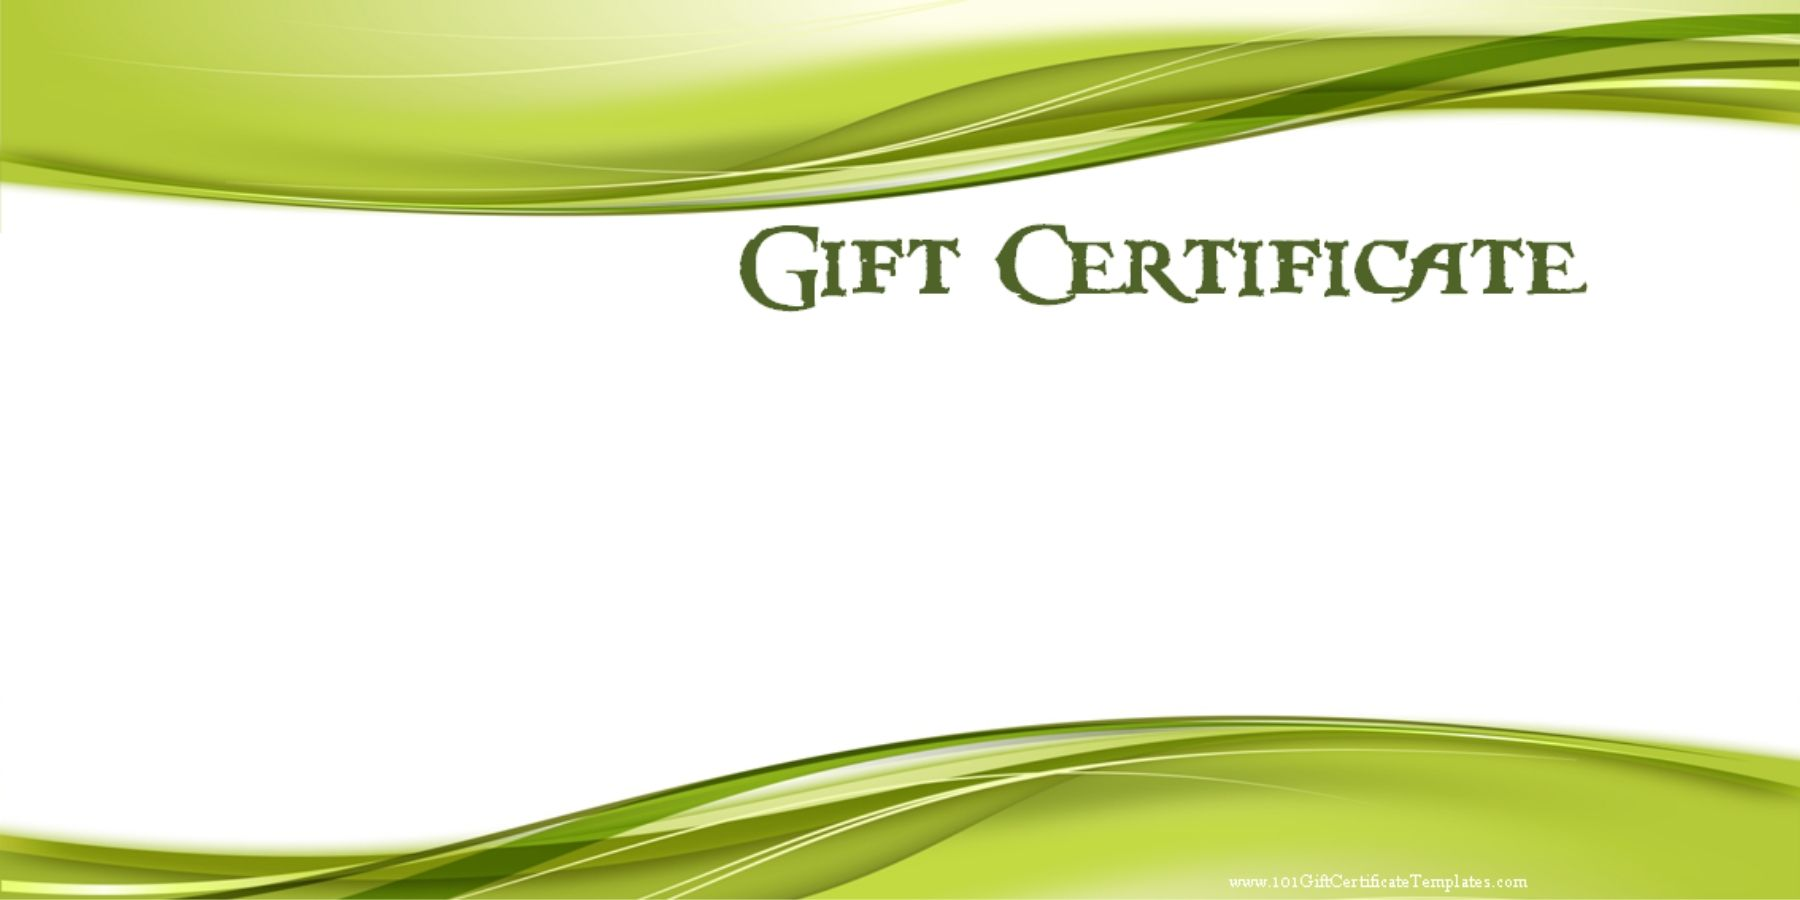 Here is a collection of 10 free gift certificate templates that you ...